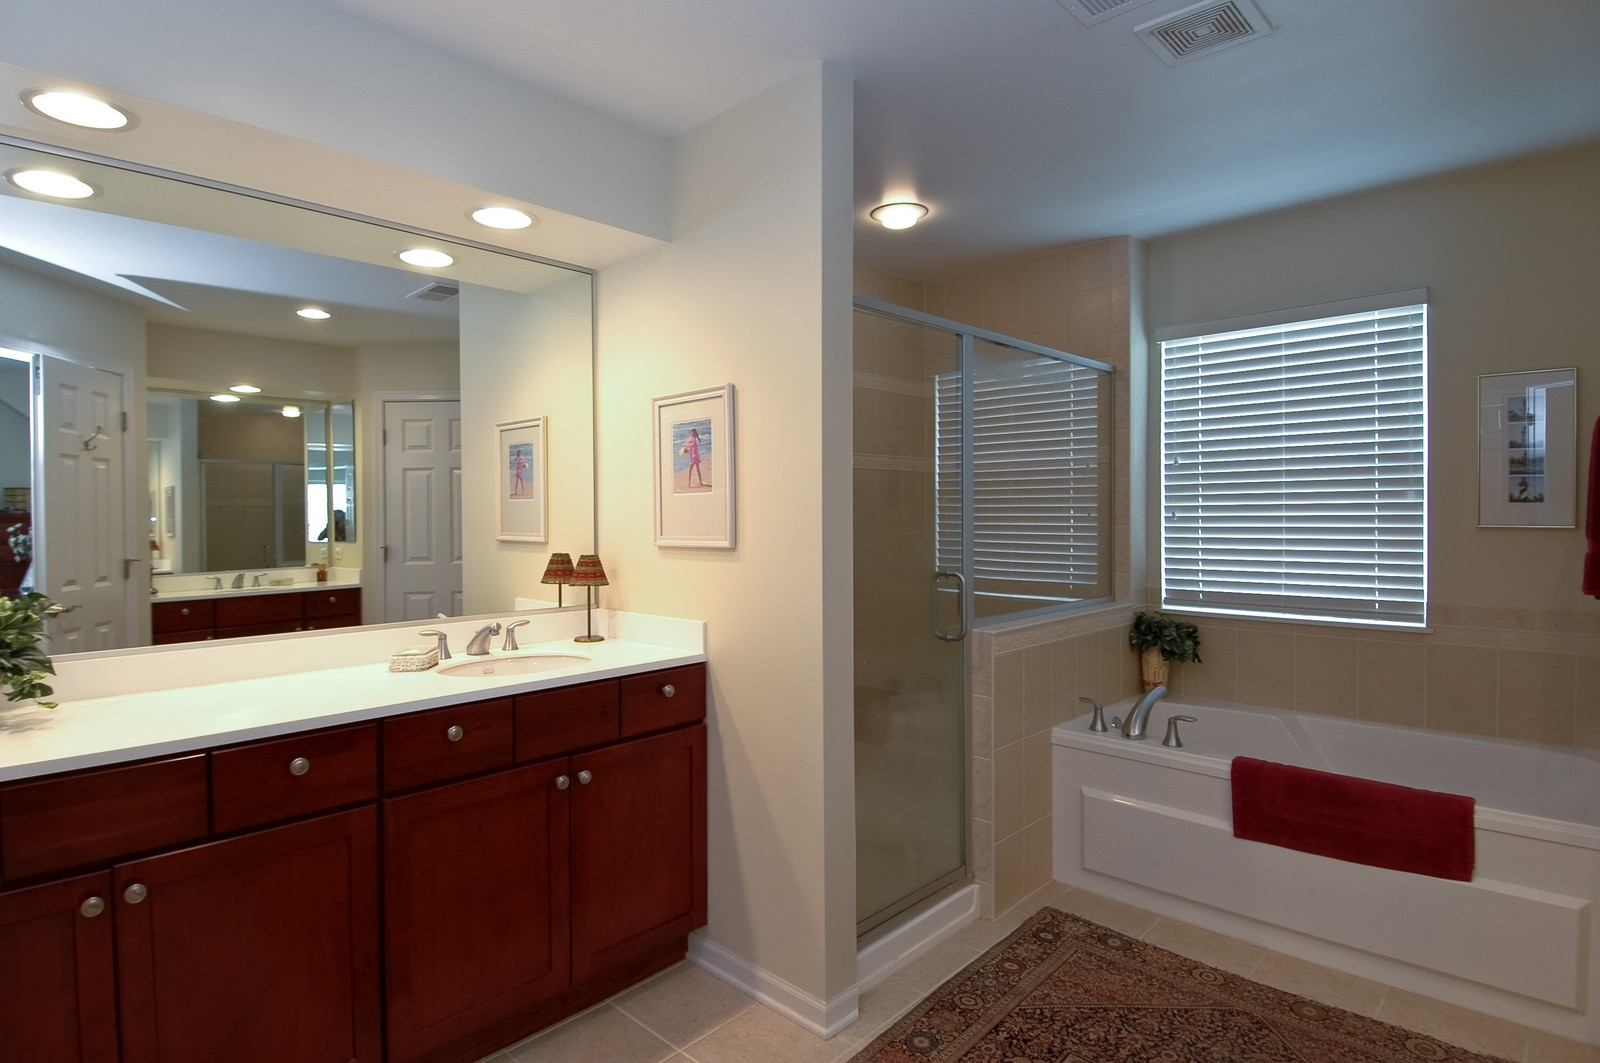 Real Estate Photography - 21899 W Tori Ln, Deer Park, IL, 60010 - Master Bathroom